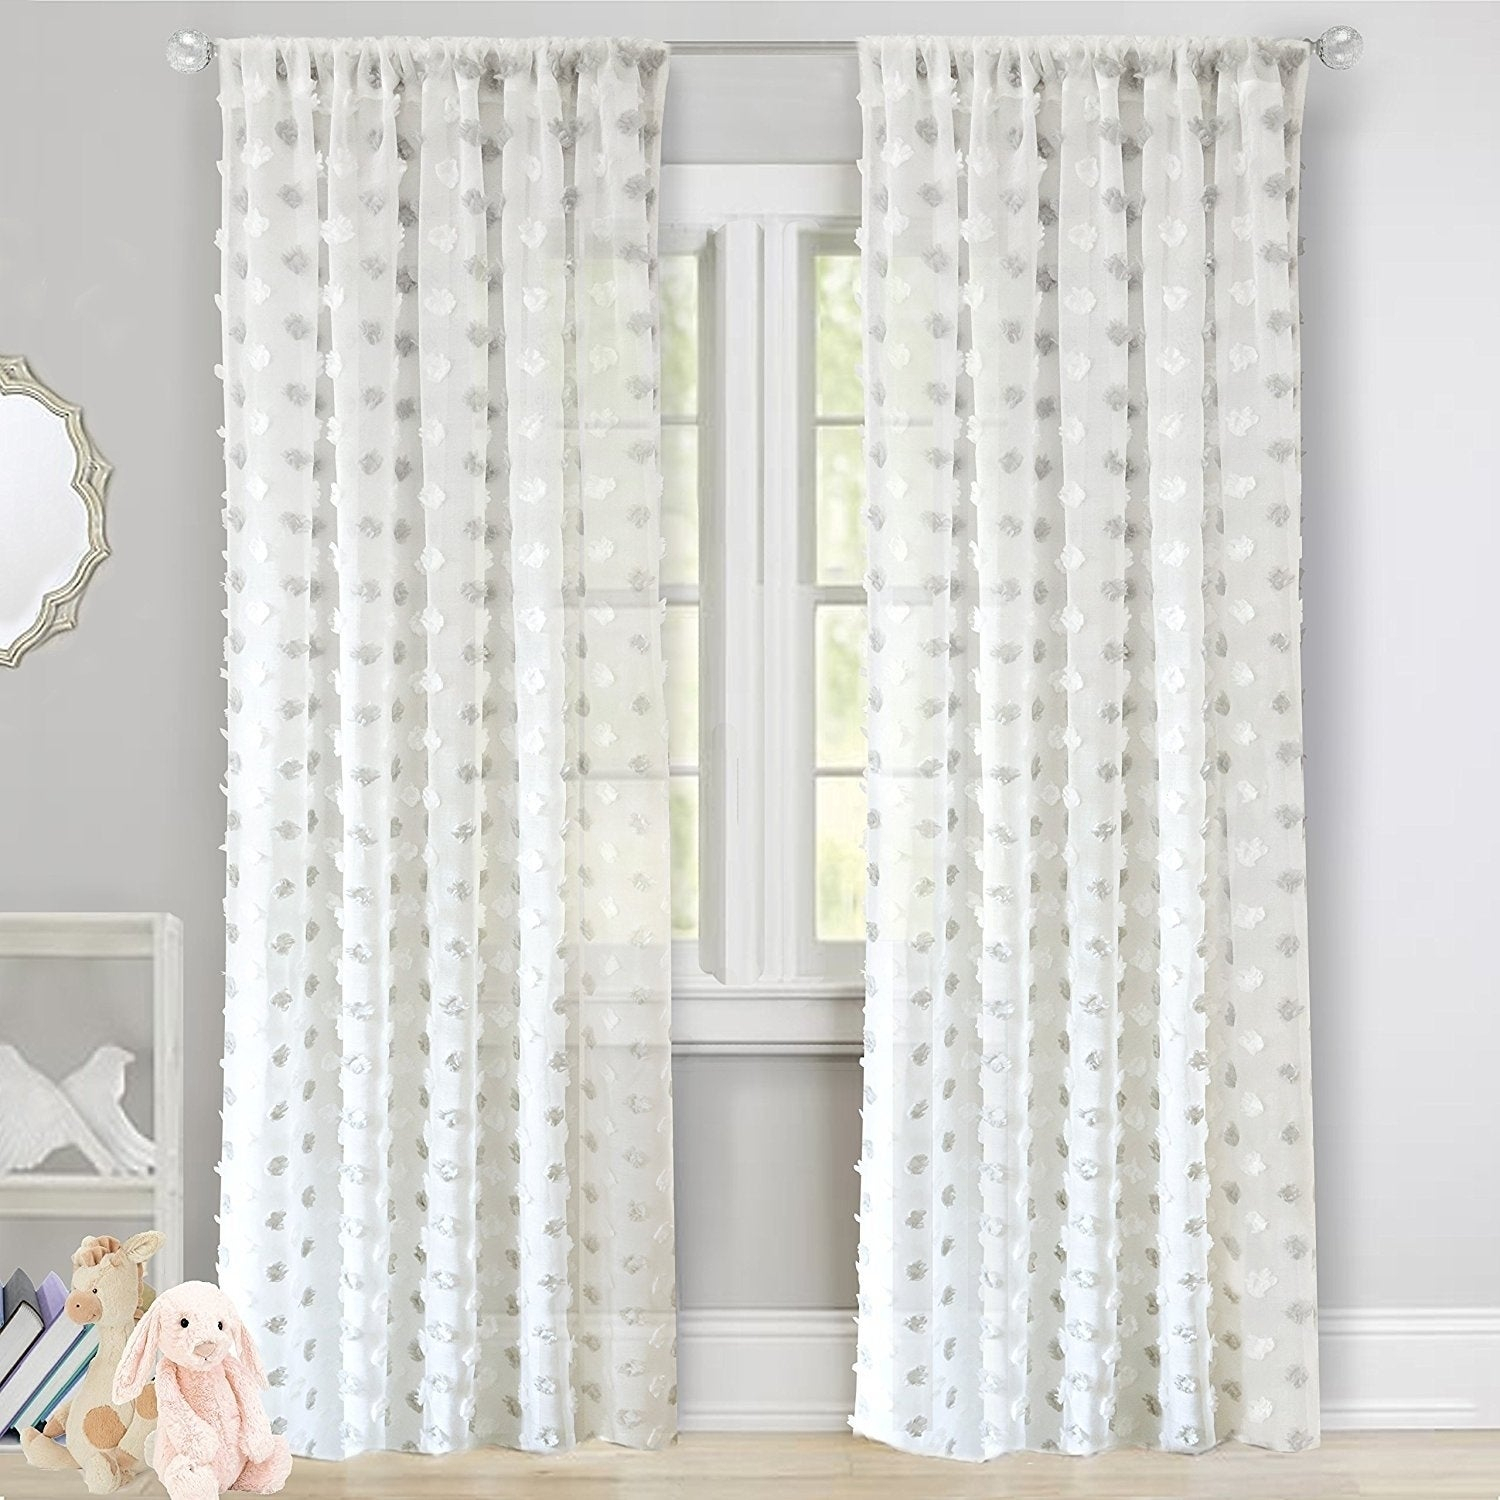 Driftaway Olivia White Voile Chiffon Sheer Window Curtain Panel Pair Within Kida Embroidered Sheer Curtain Panels (View 15 of 20)